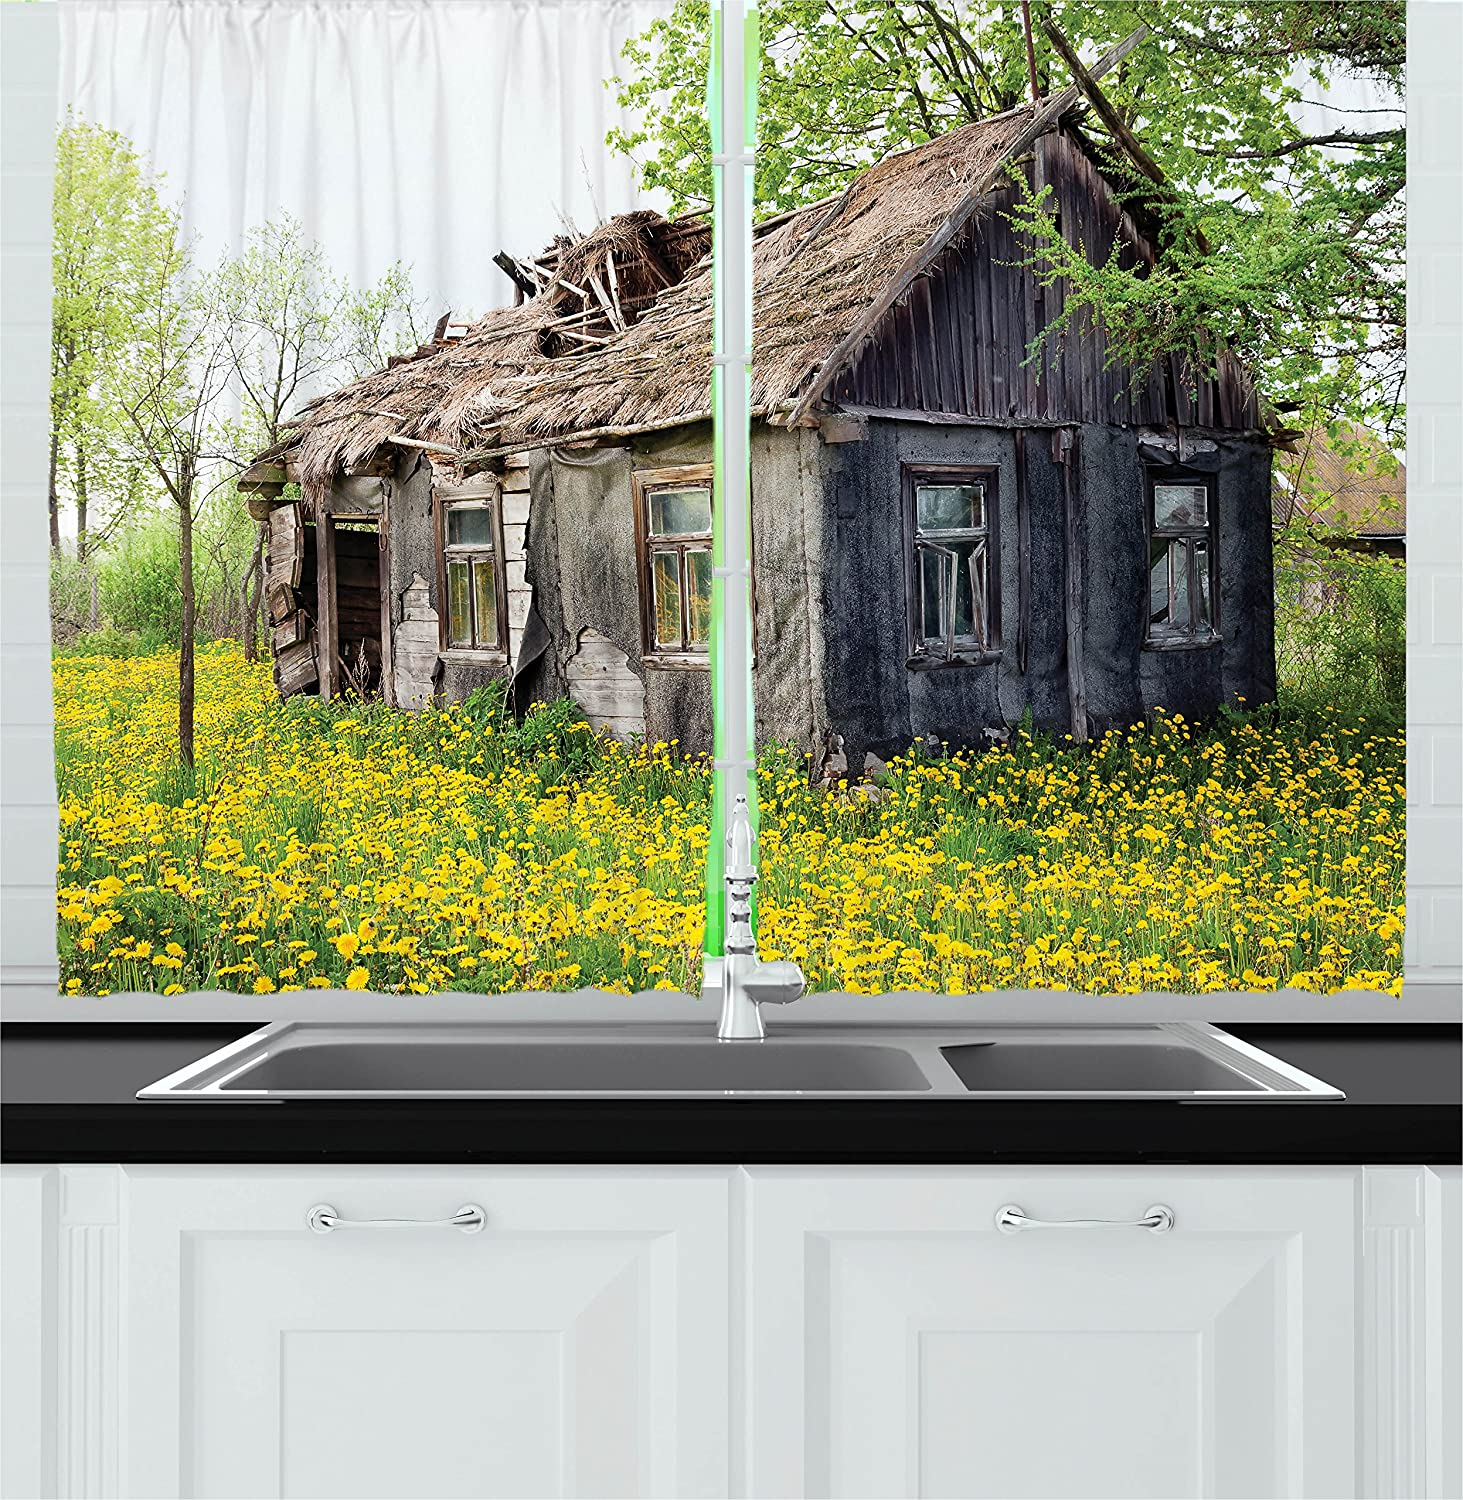 Ambesonne Wooden Decor Kitchen Curtains, Old Barn Farmhouse Countryside Cottage House in Garden Rural Vintage Picture, Window Drapes 2 Panels Set for Kitchen Cafe, 55W X 39L Inches, Brown Green